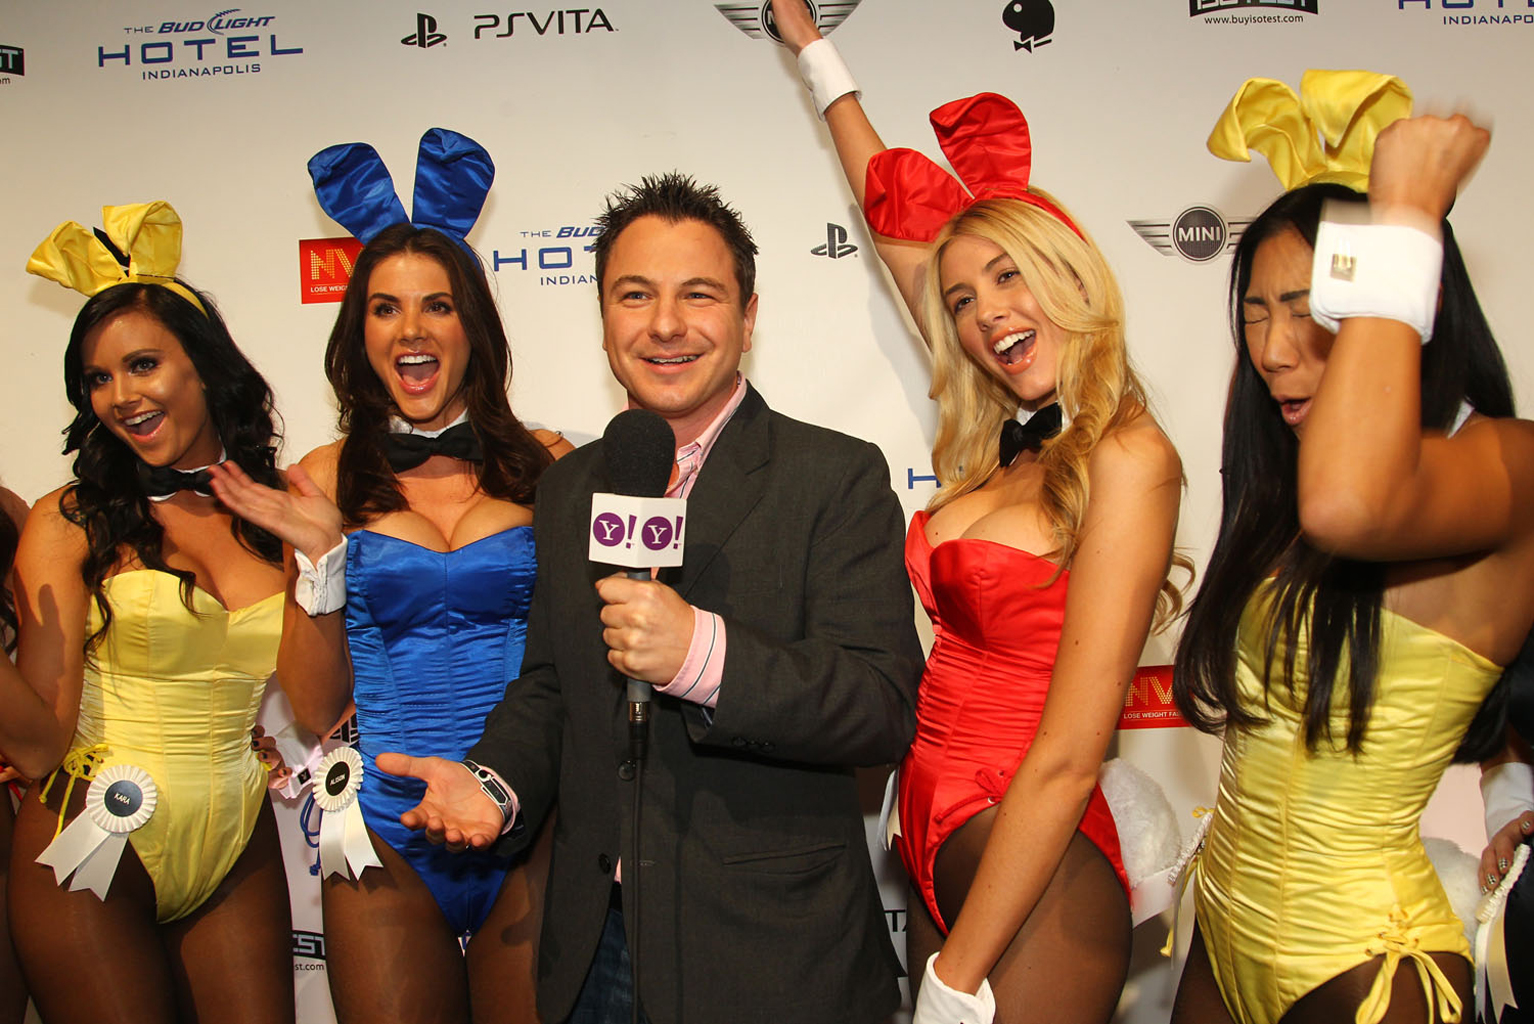 Playboy bunnies arrive at the Playboy Party at the Bud Light Hotel in Indianapolis.